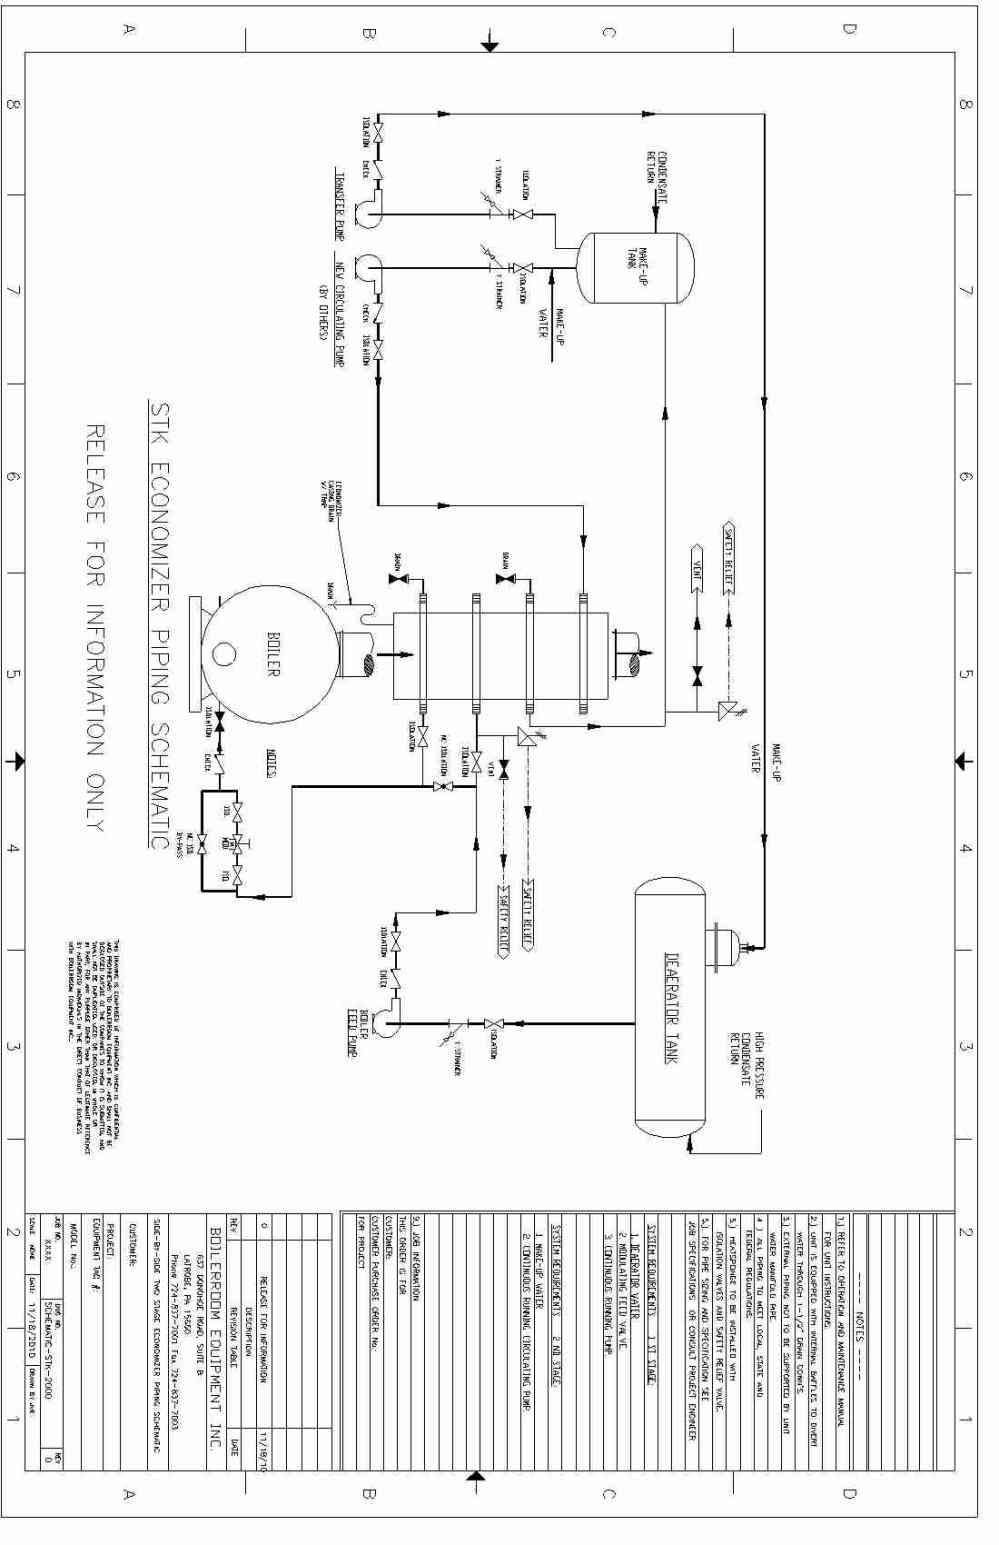 medium resolution of warn xd9000i wiring diagram free download schematic warn warn 8274 winch solenoids warn winch control box